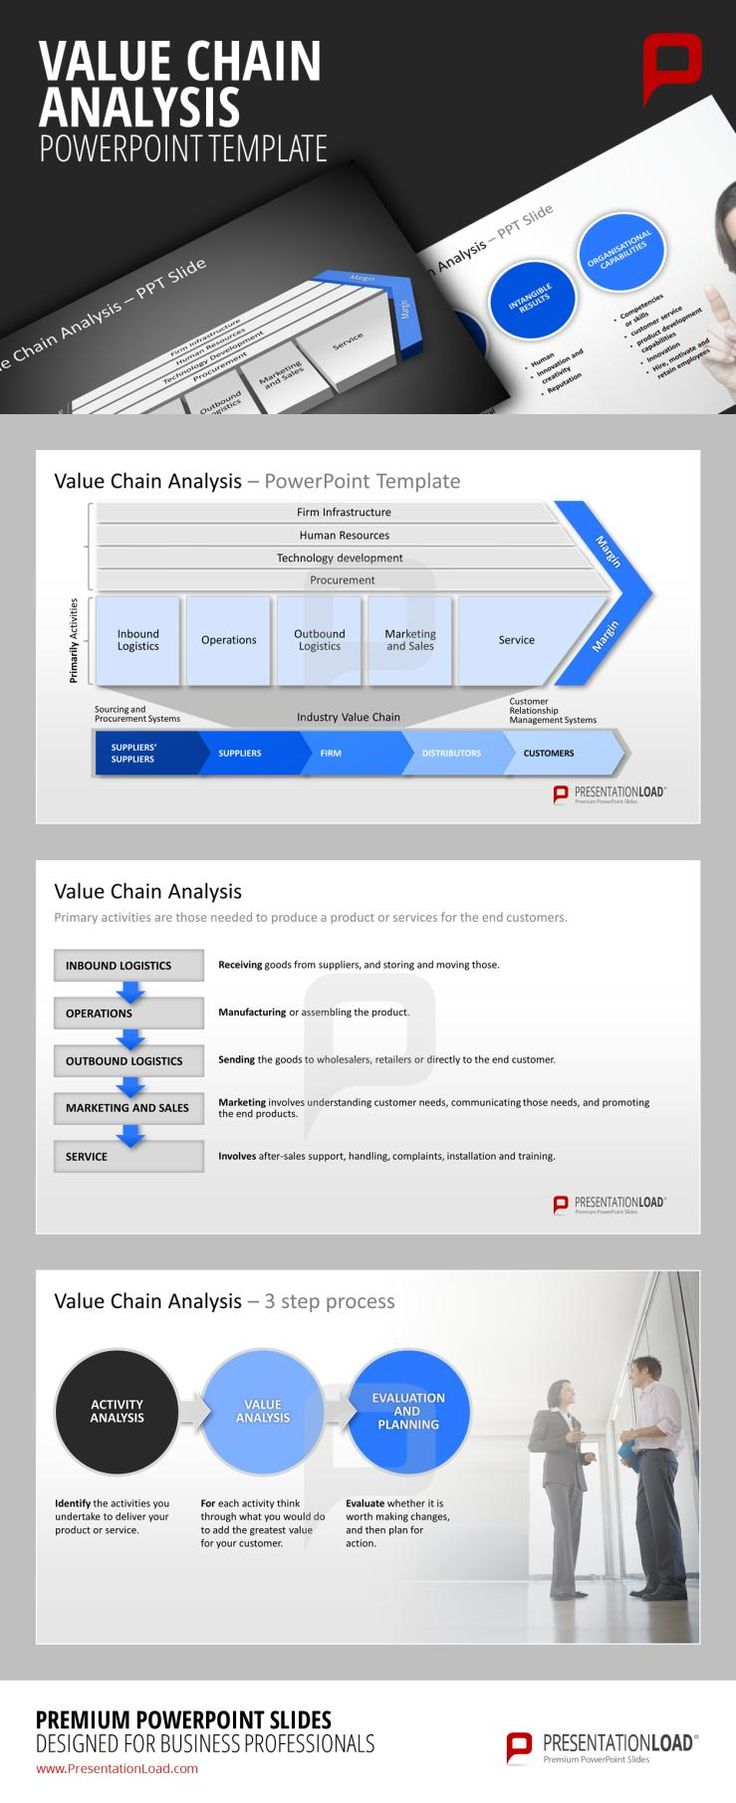 75 best Industry 4.0 images on Pinterest | Business, Productivity ...